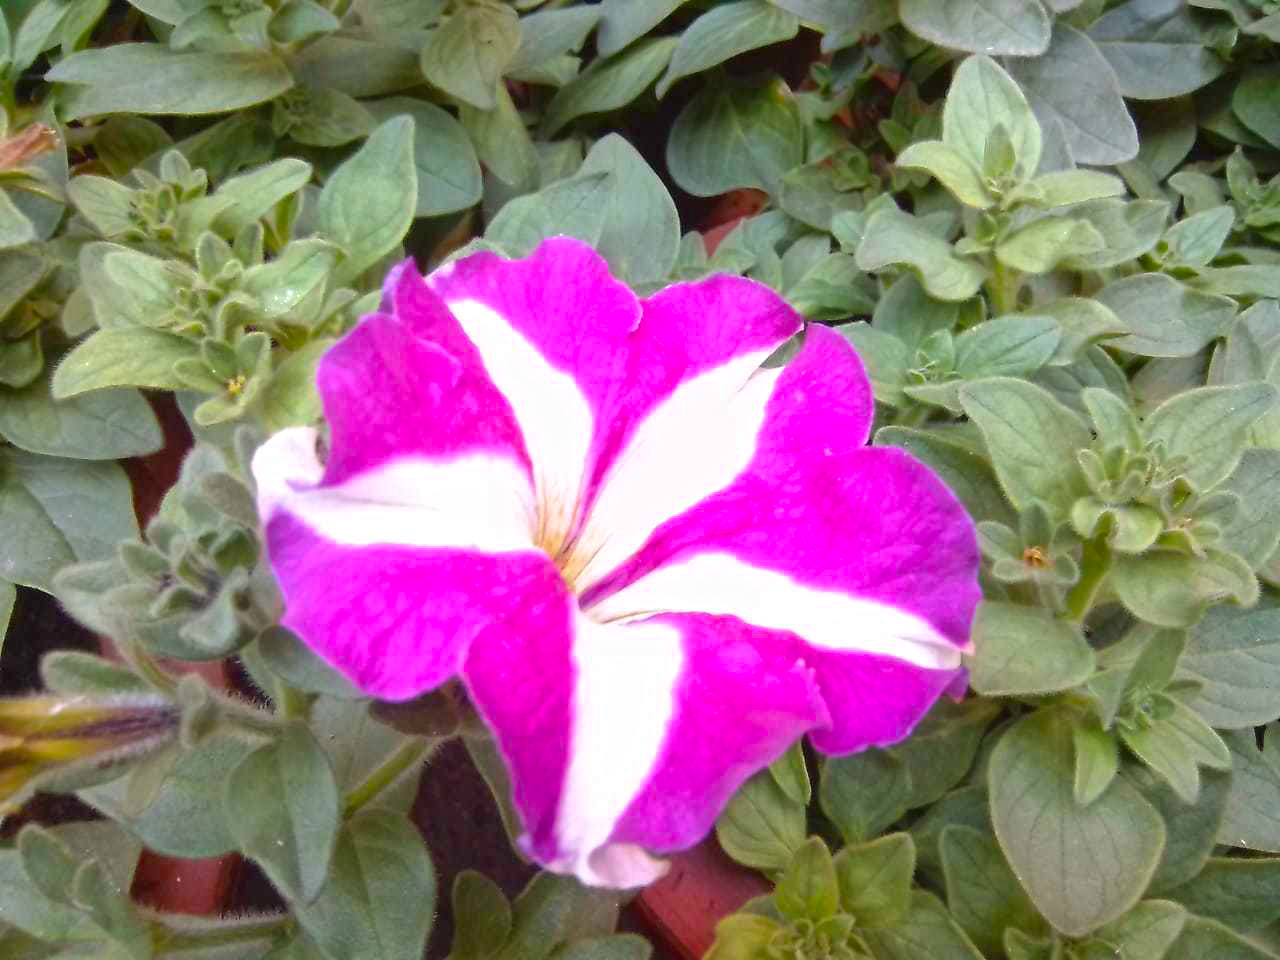 Petunias flower have two colors.